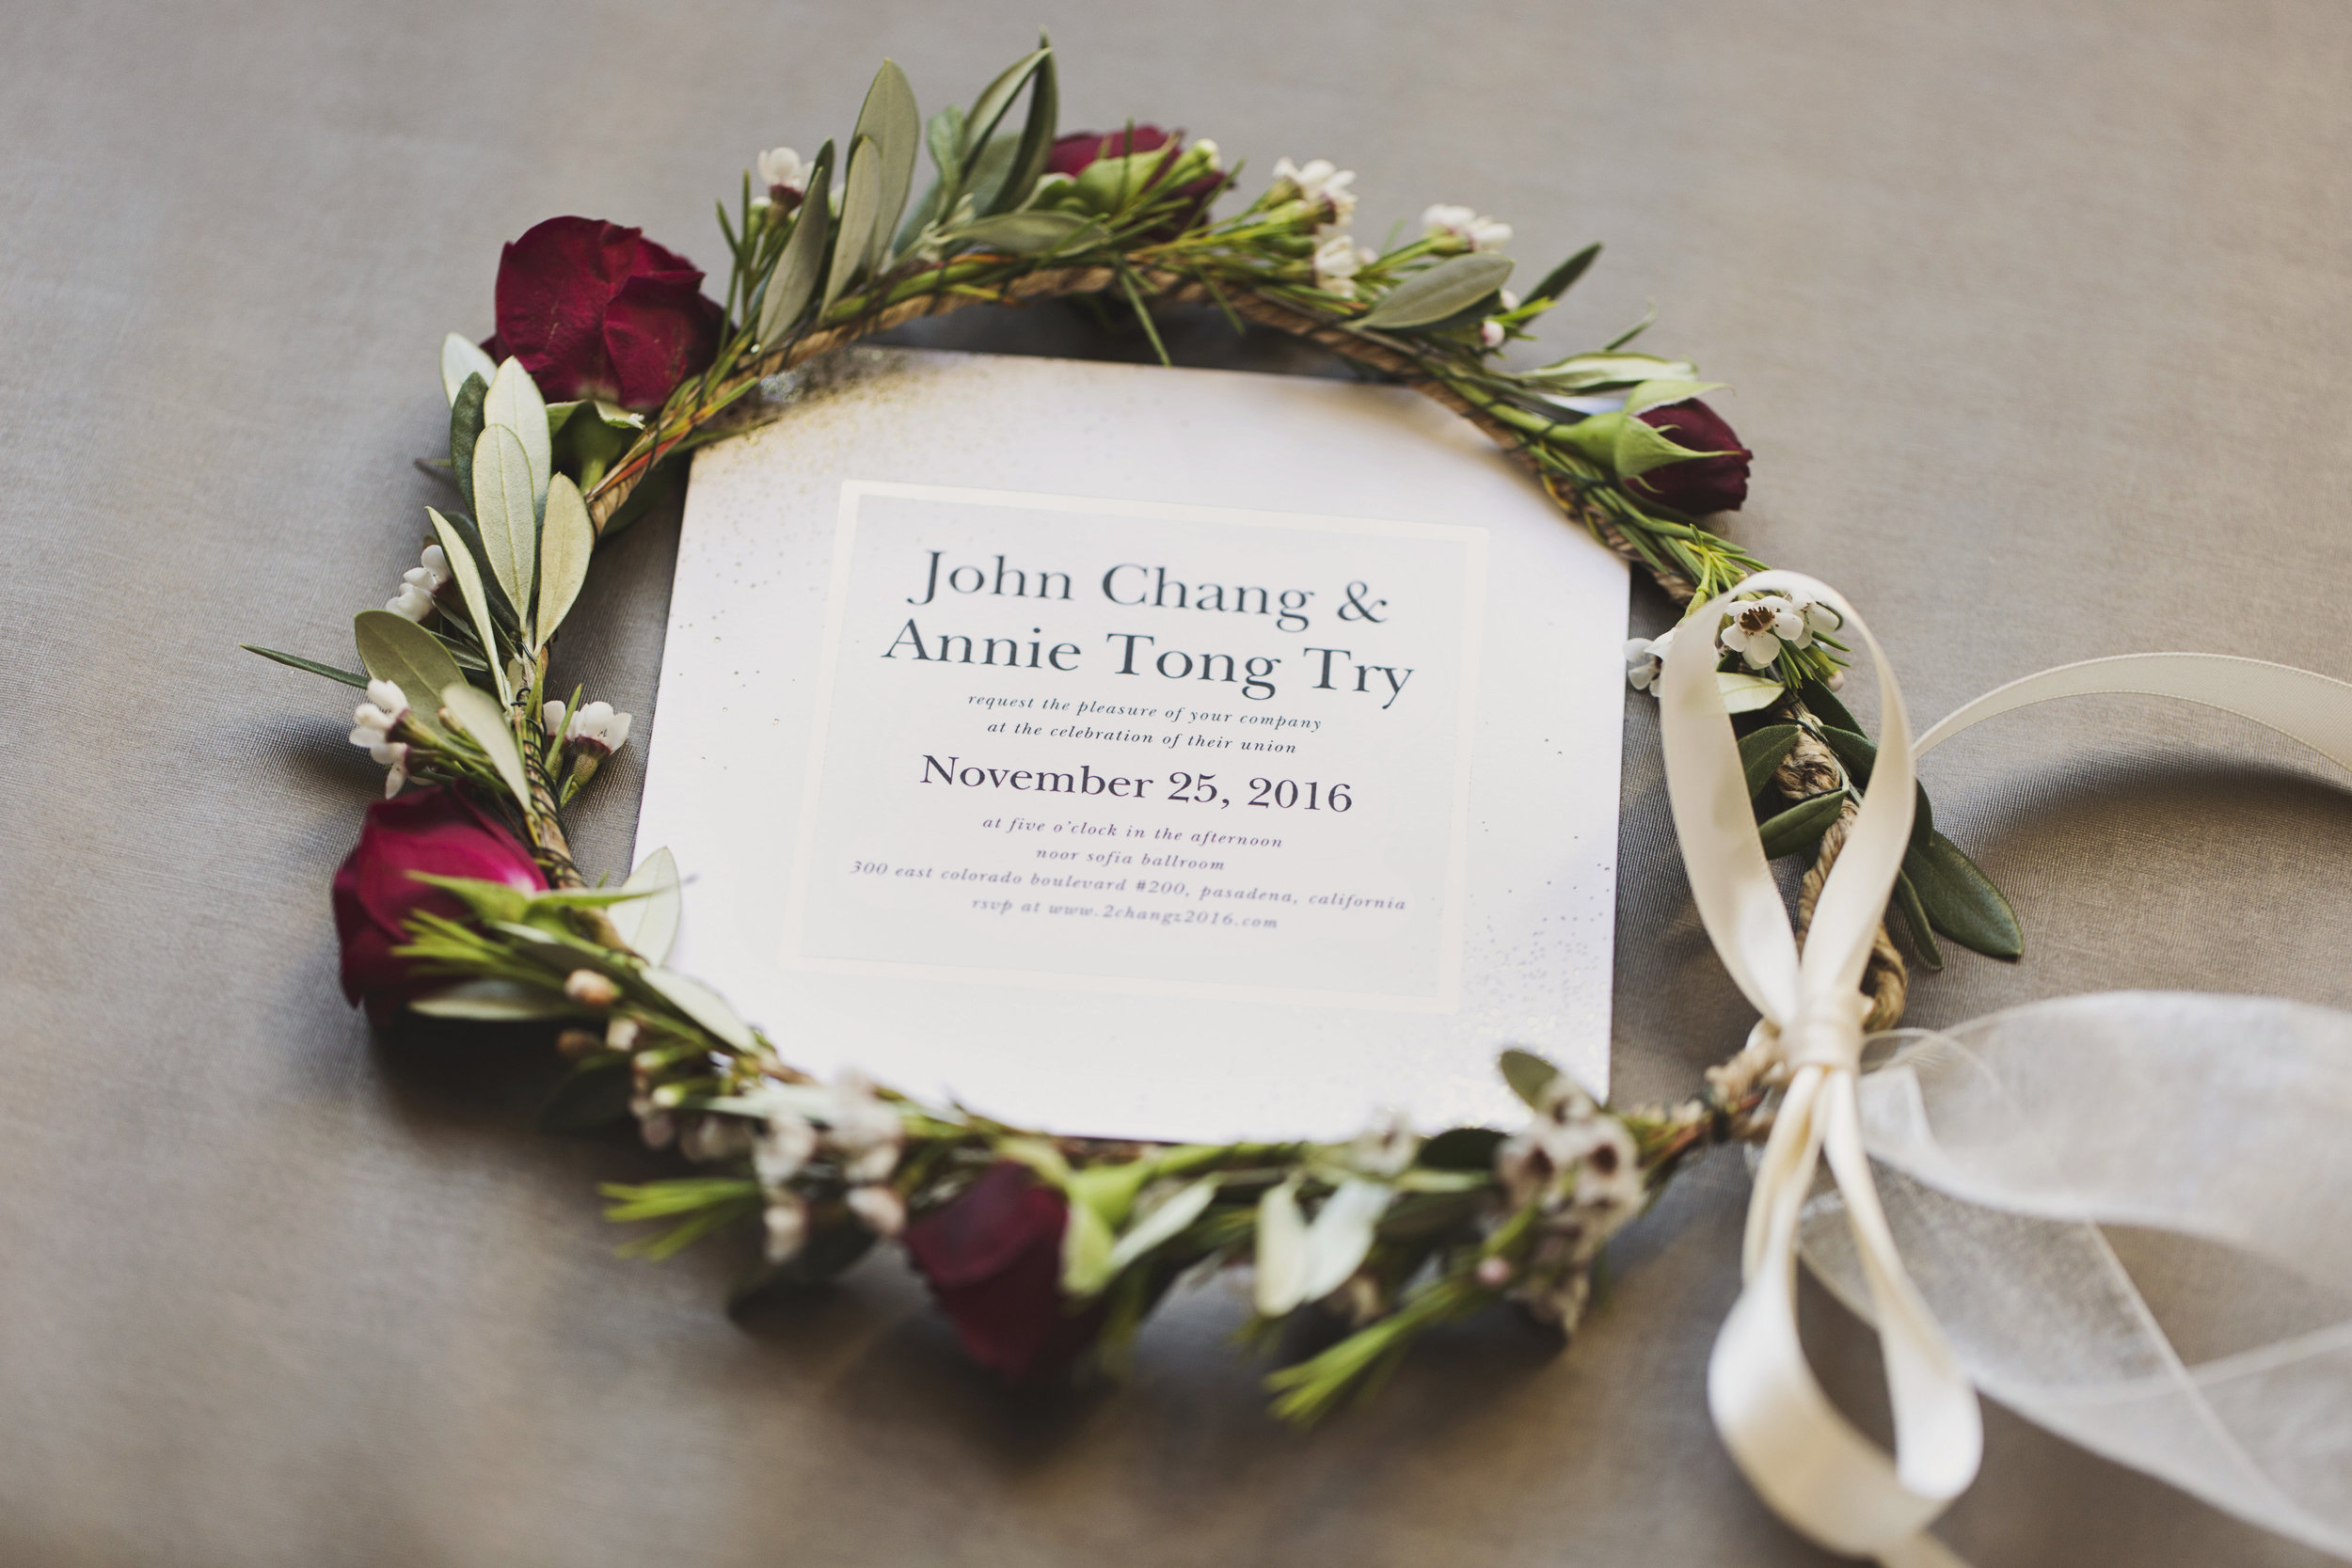 Beautiful Traditional Modern Chinese Wedding floral crown with invitation.jpg